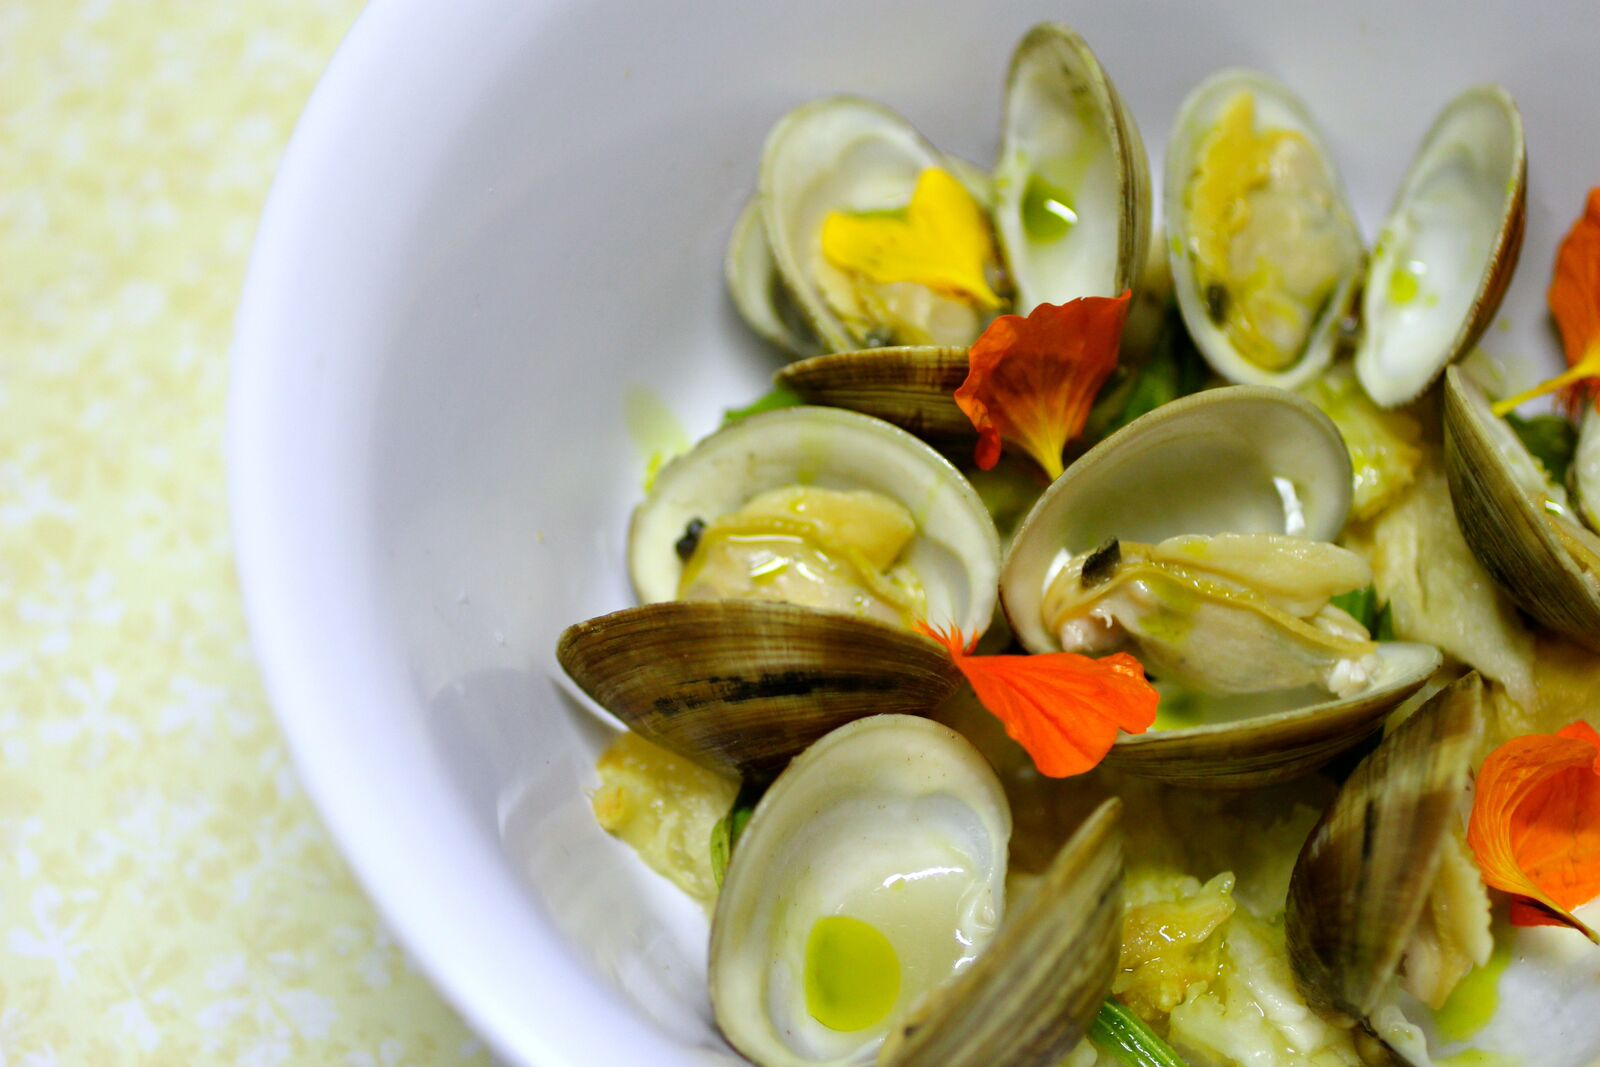 Clams and nasturtiums